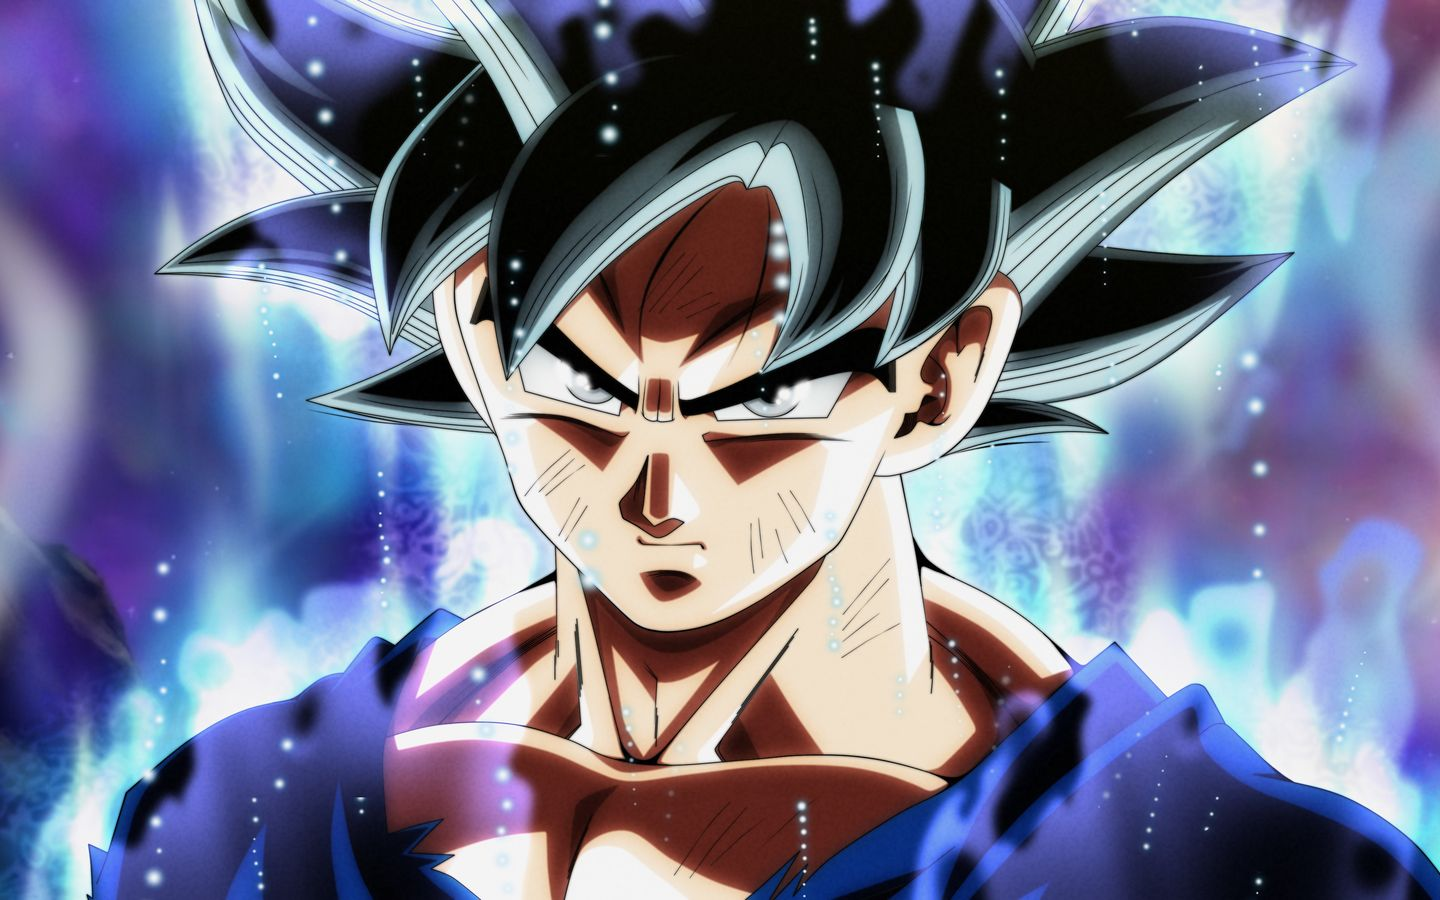 Iphone Background Dragon Ball Z Goku Hd Wallpaper For Android